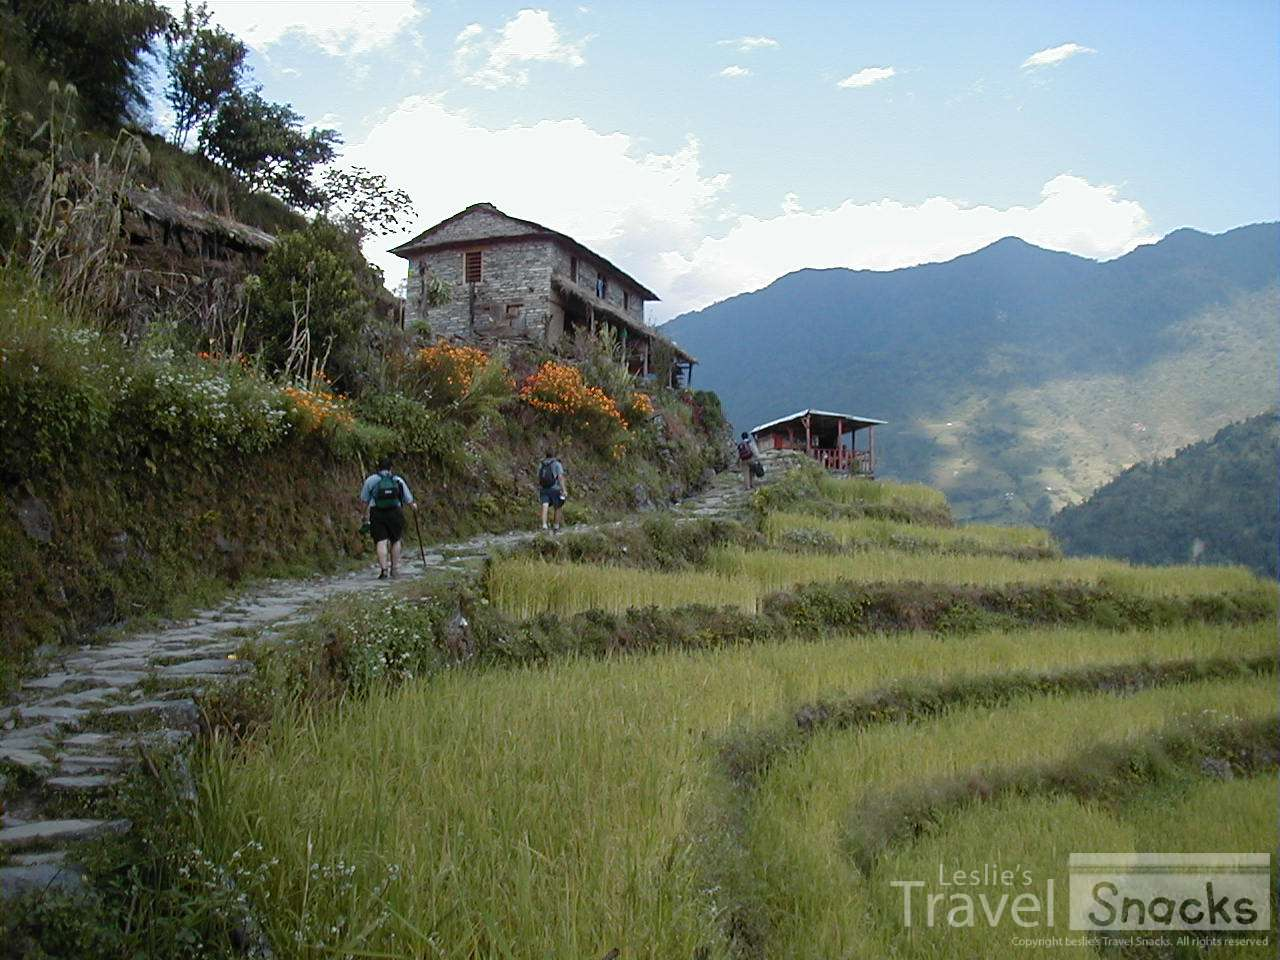 Trekking in Nepal is much easier than I though! LOL Especially when you have a porter to carry your bag.